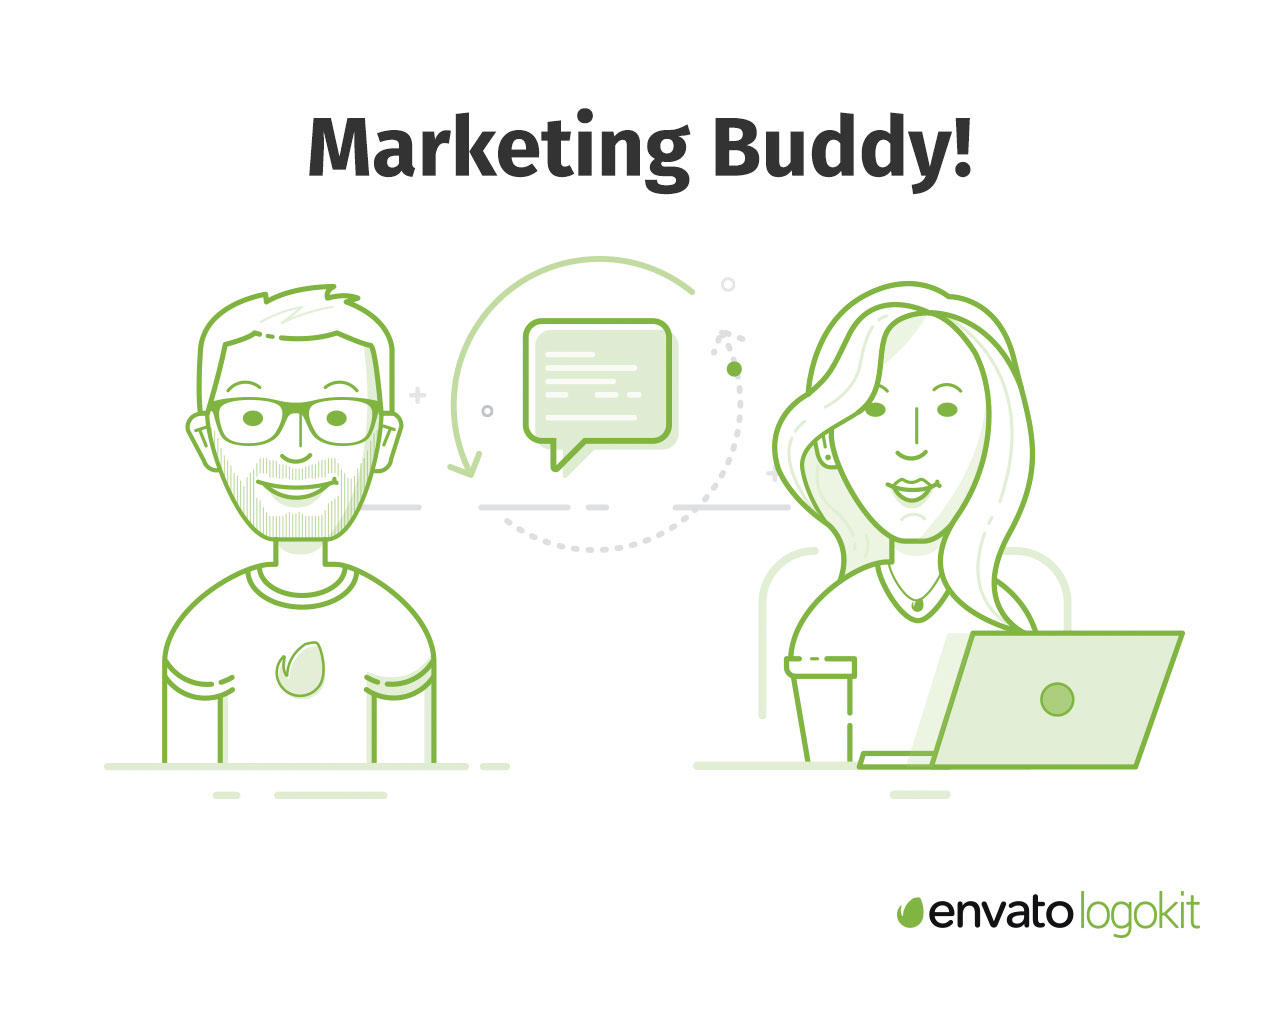 Marketing Buddy by envatologokit - 106638